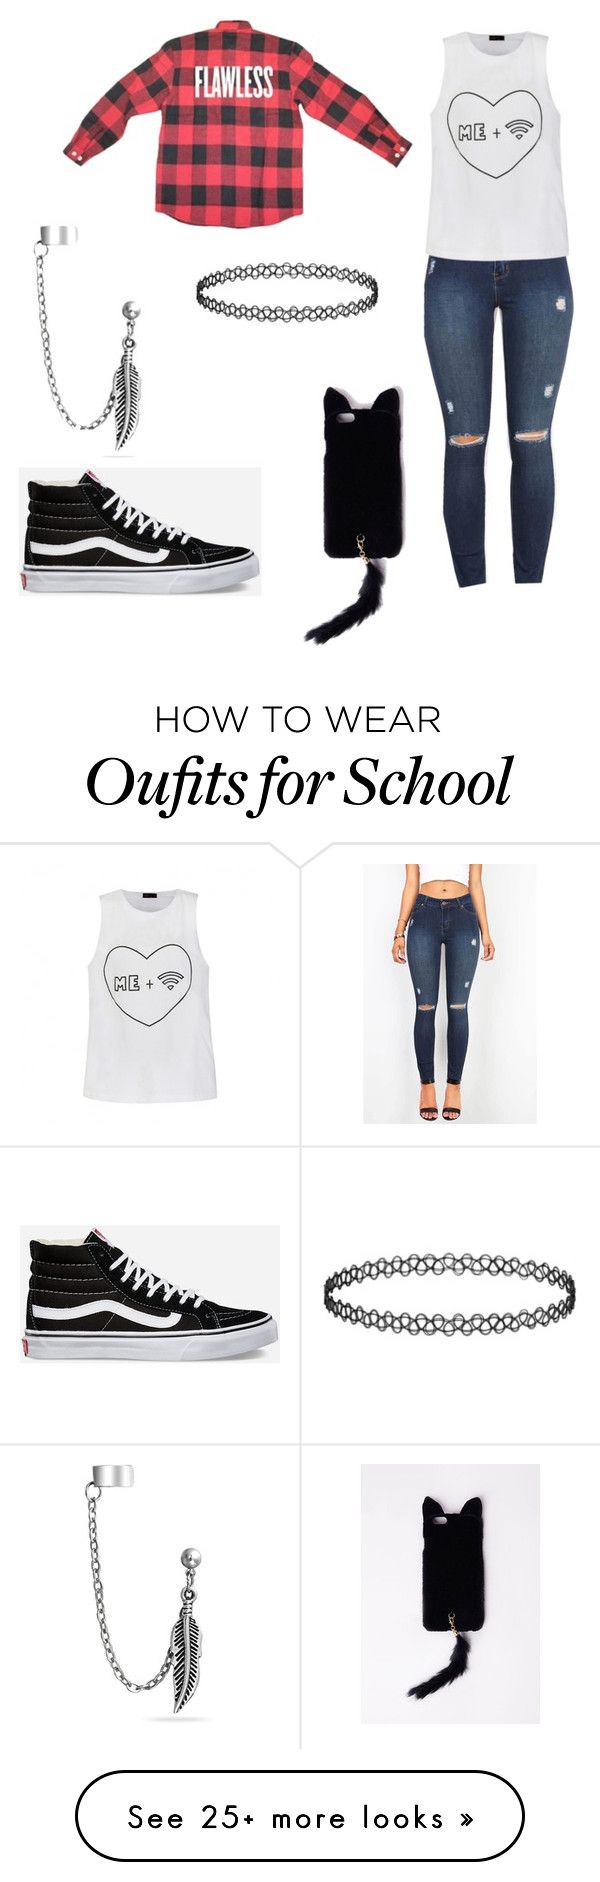 """School sucks"" by lig3126 on Polyvore featuring Ally Fashion, Vans, Missguided and Bling Jewelry"